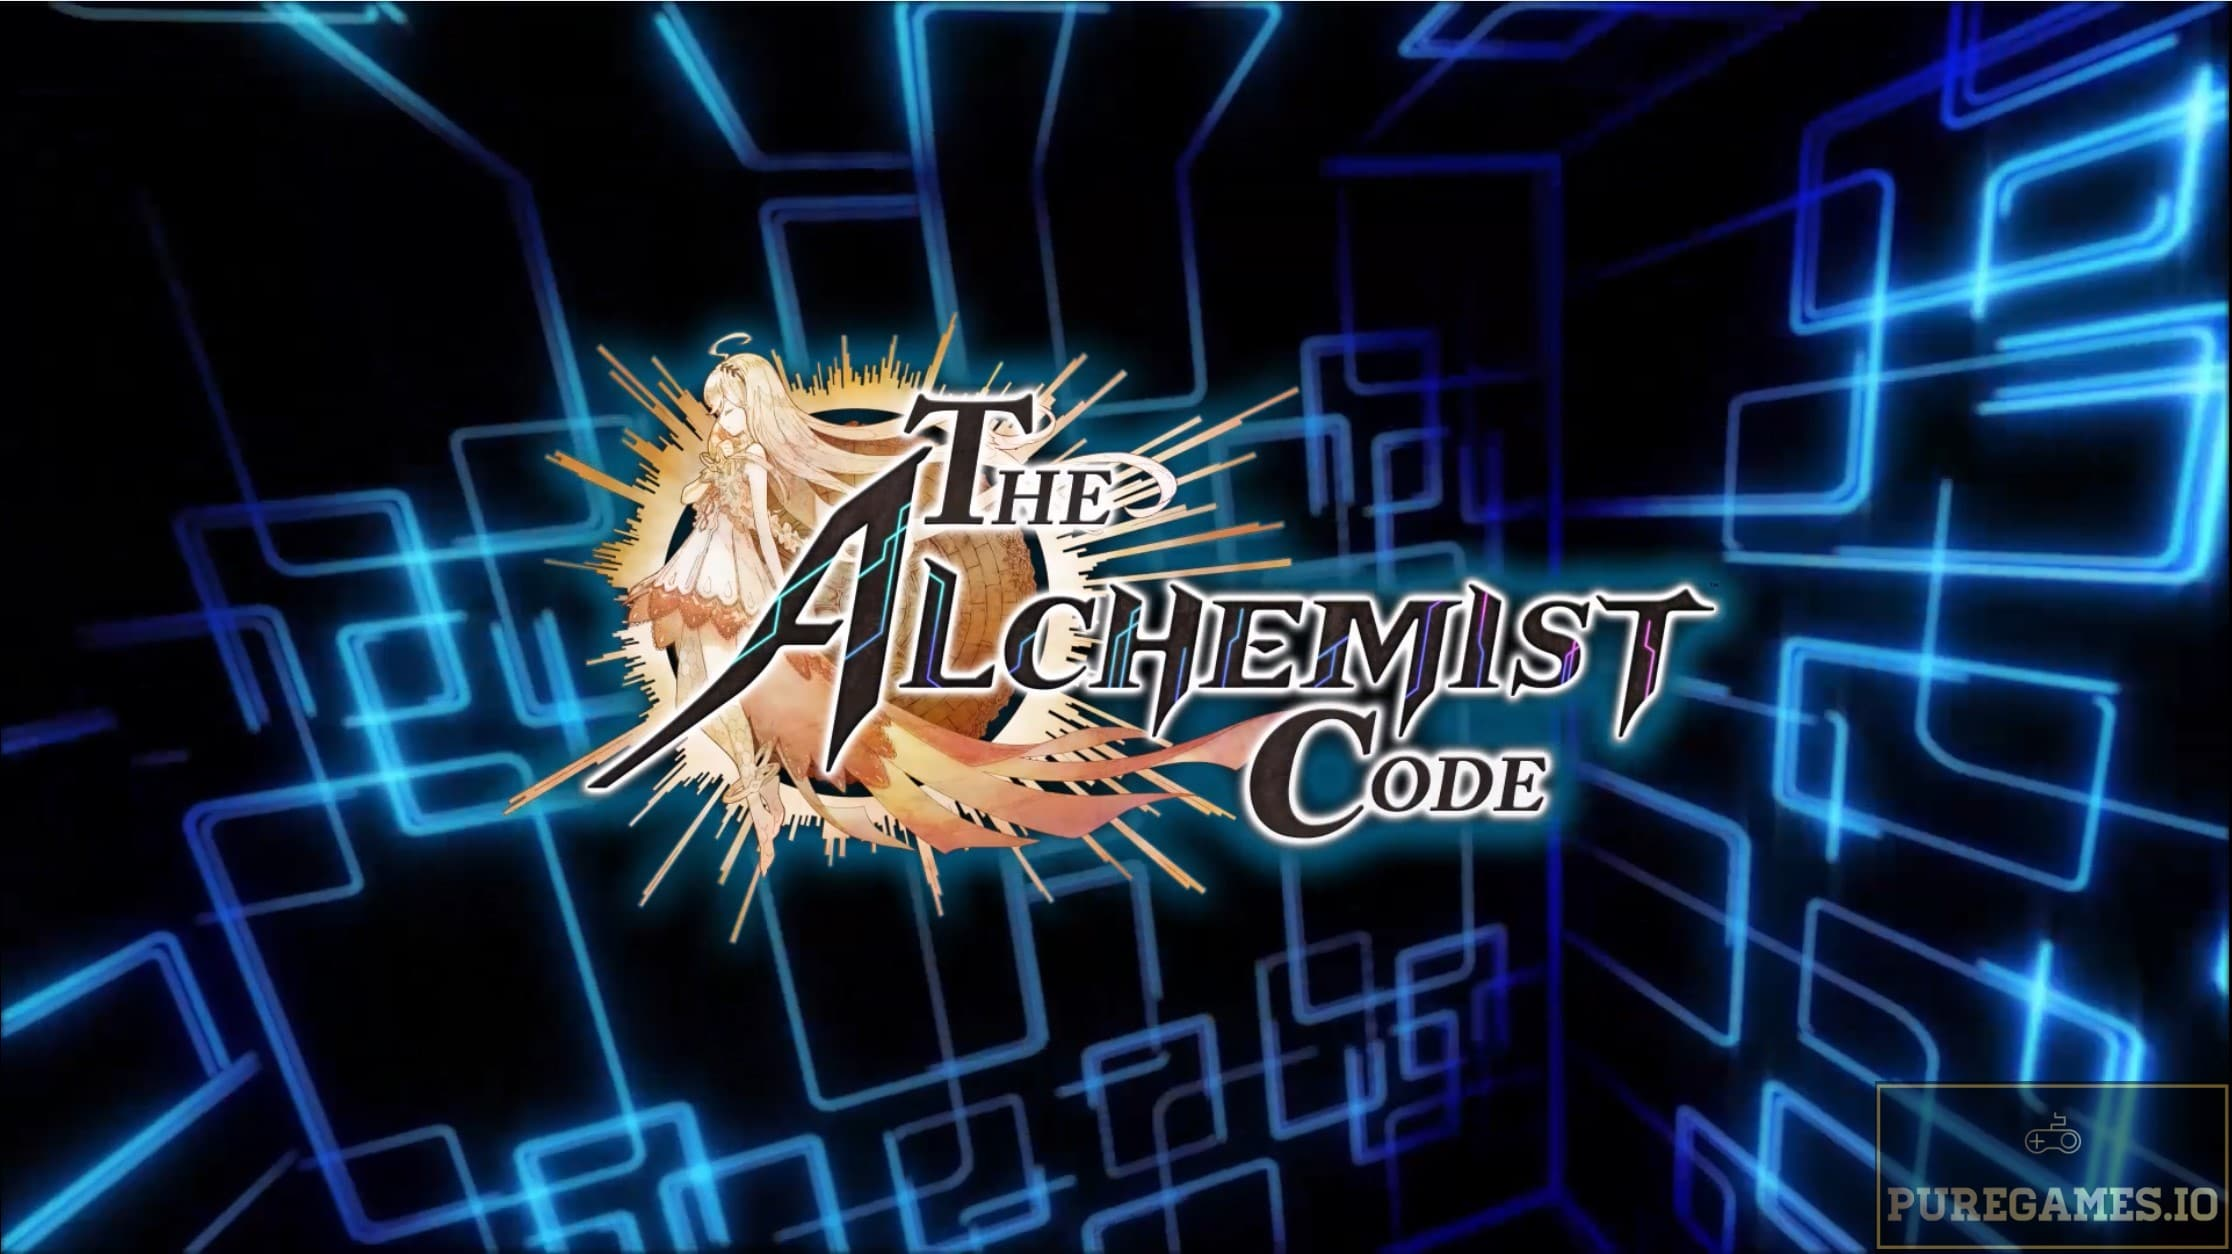 Download The Alchemist Code APK for Android/iOS 5